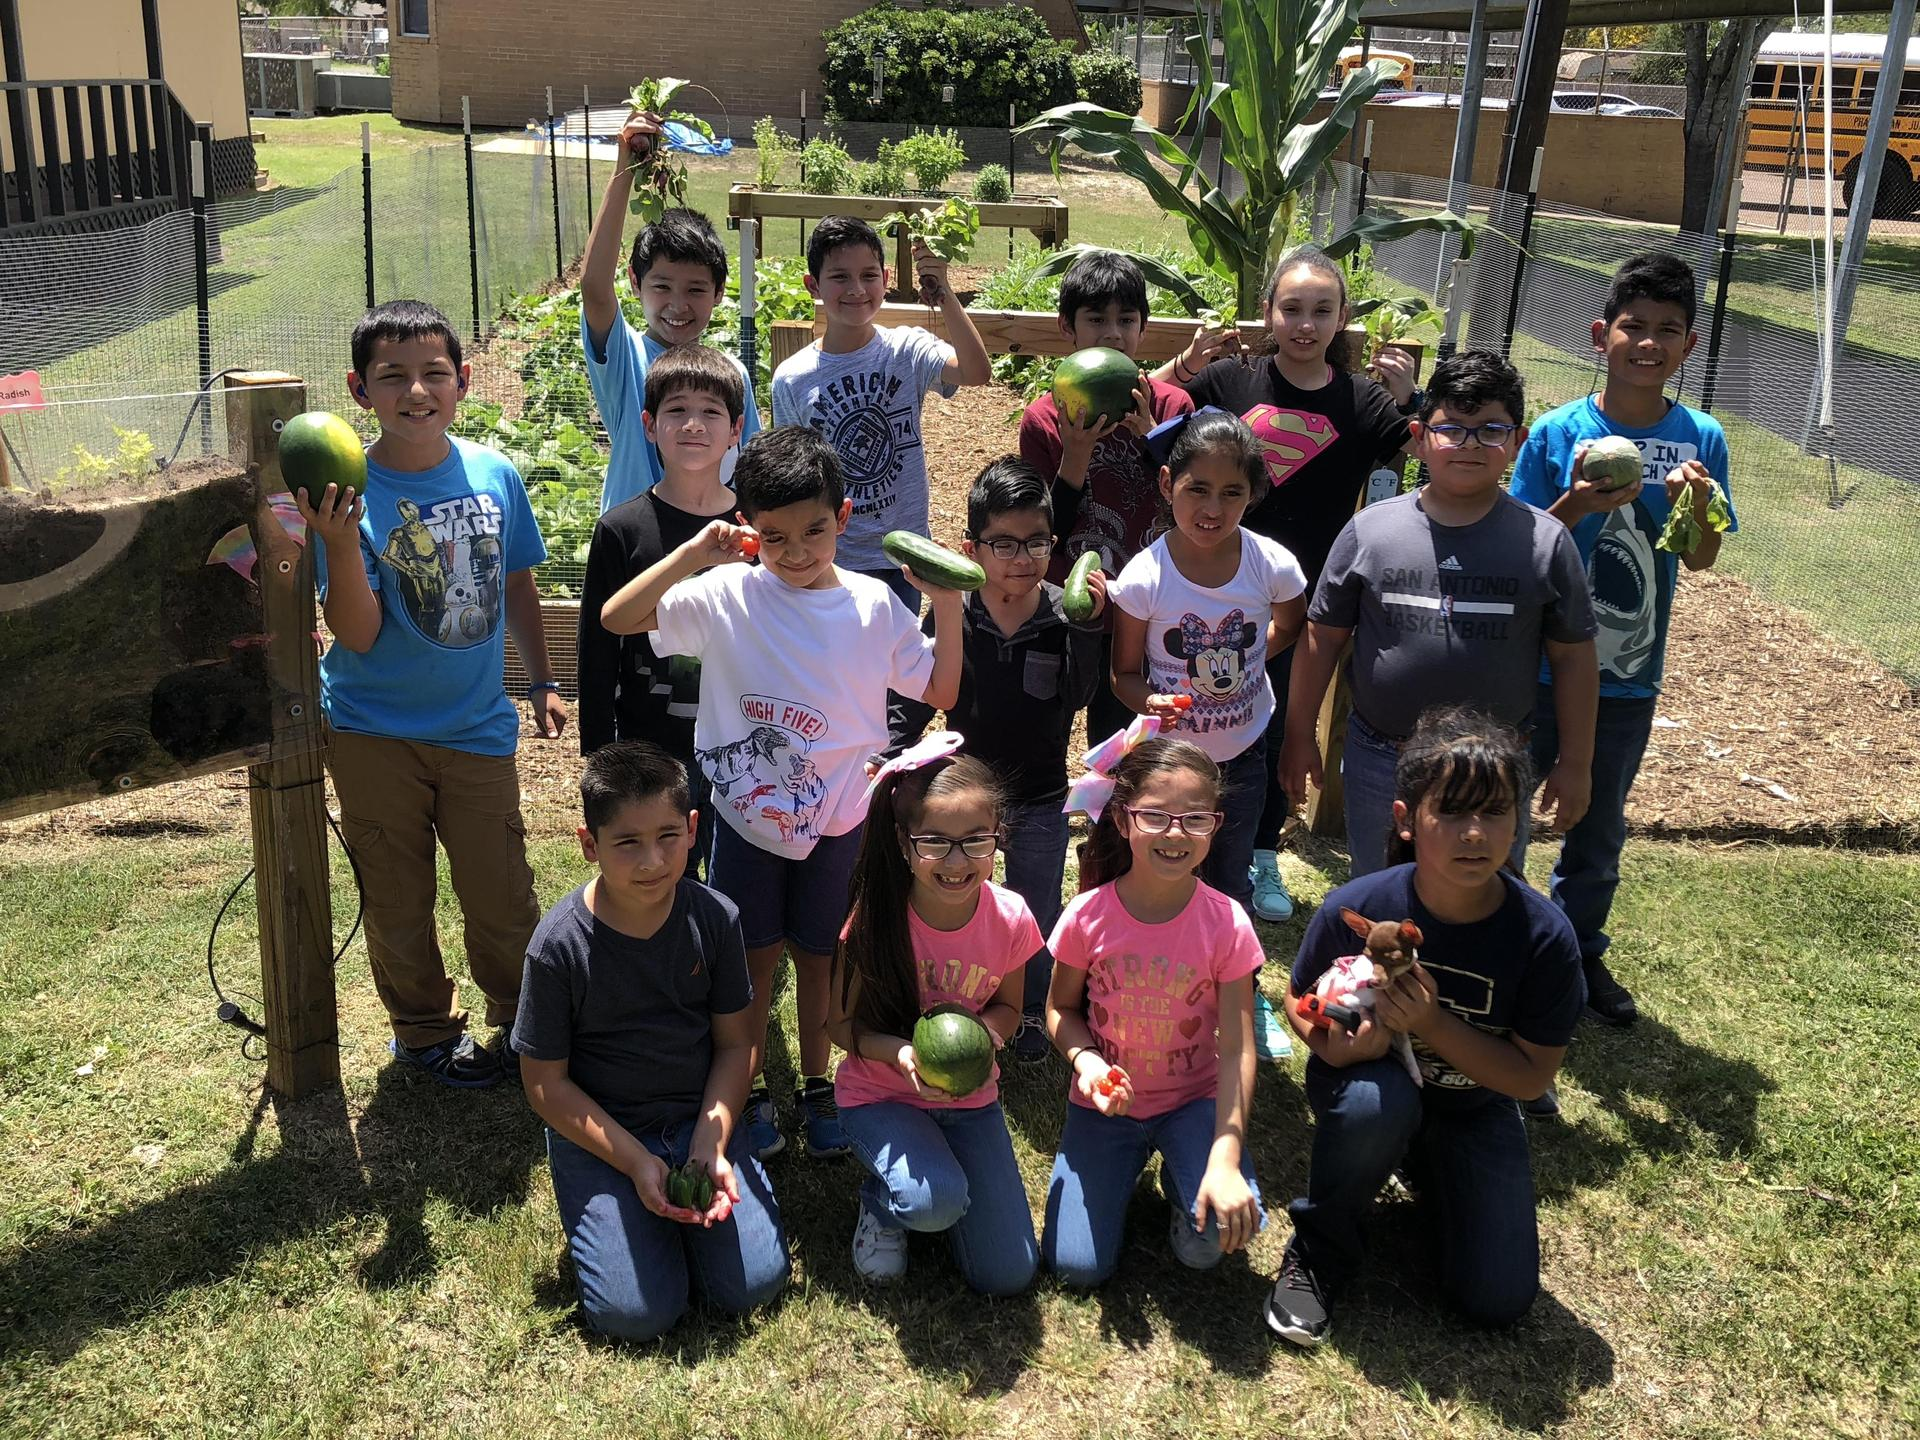 Escandon Garden Club